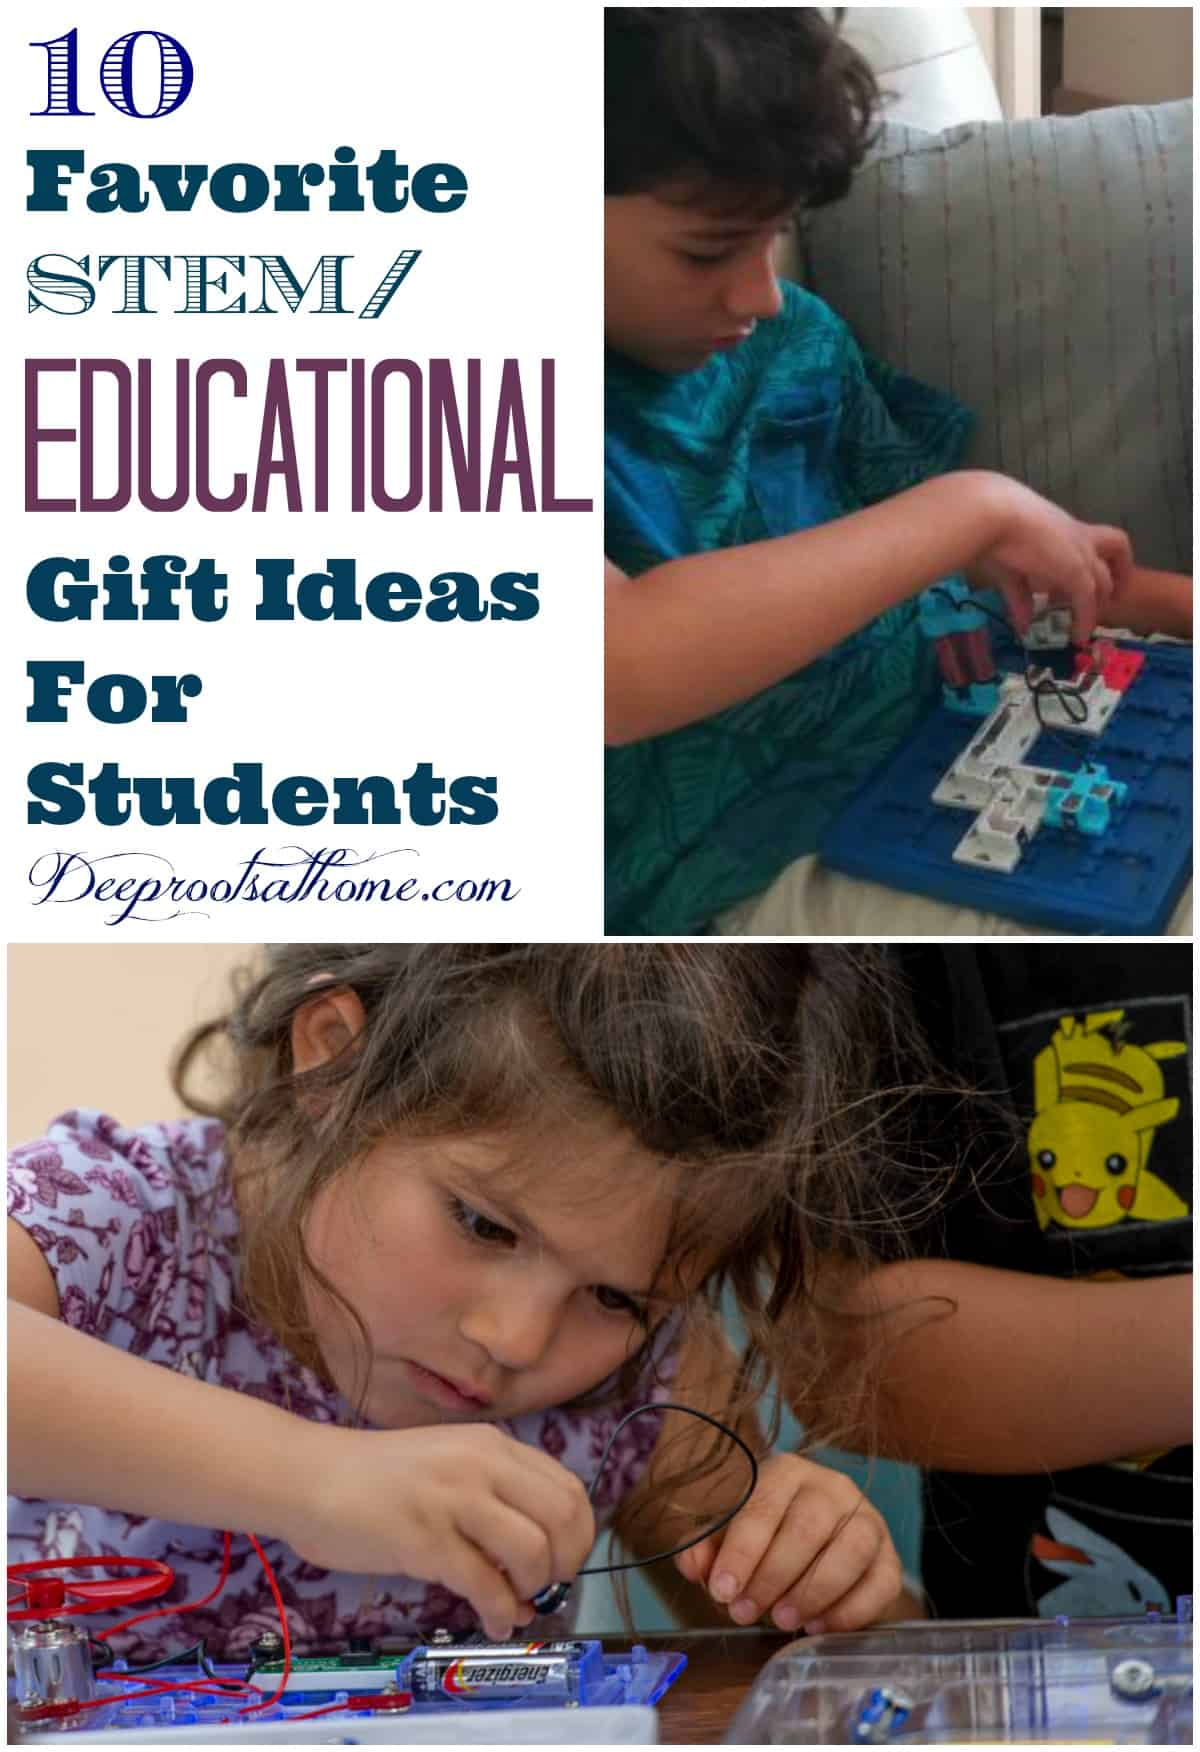 Our 10 Favorite STEM/Educational Gift Ideas For Students. Young students working intently on STEM learning games